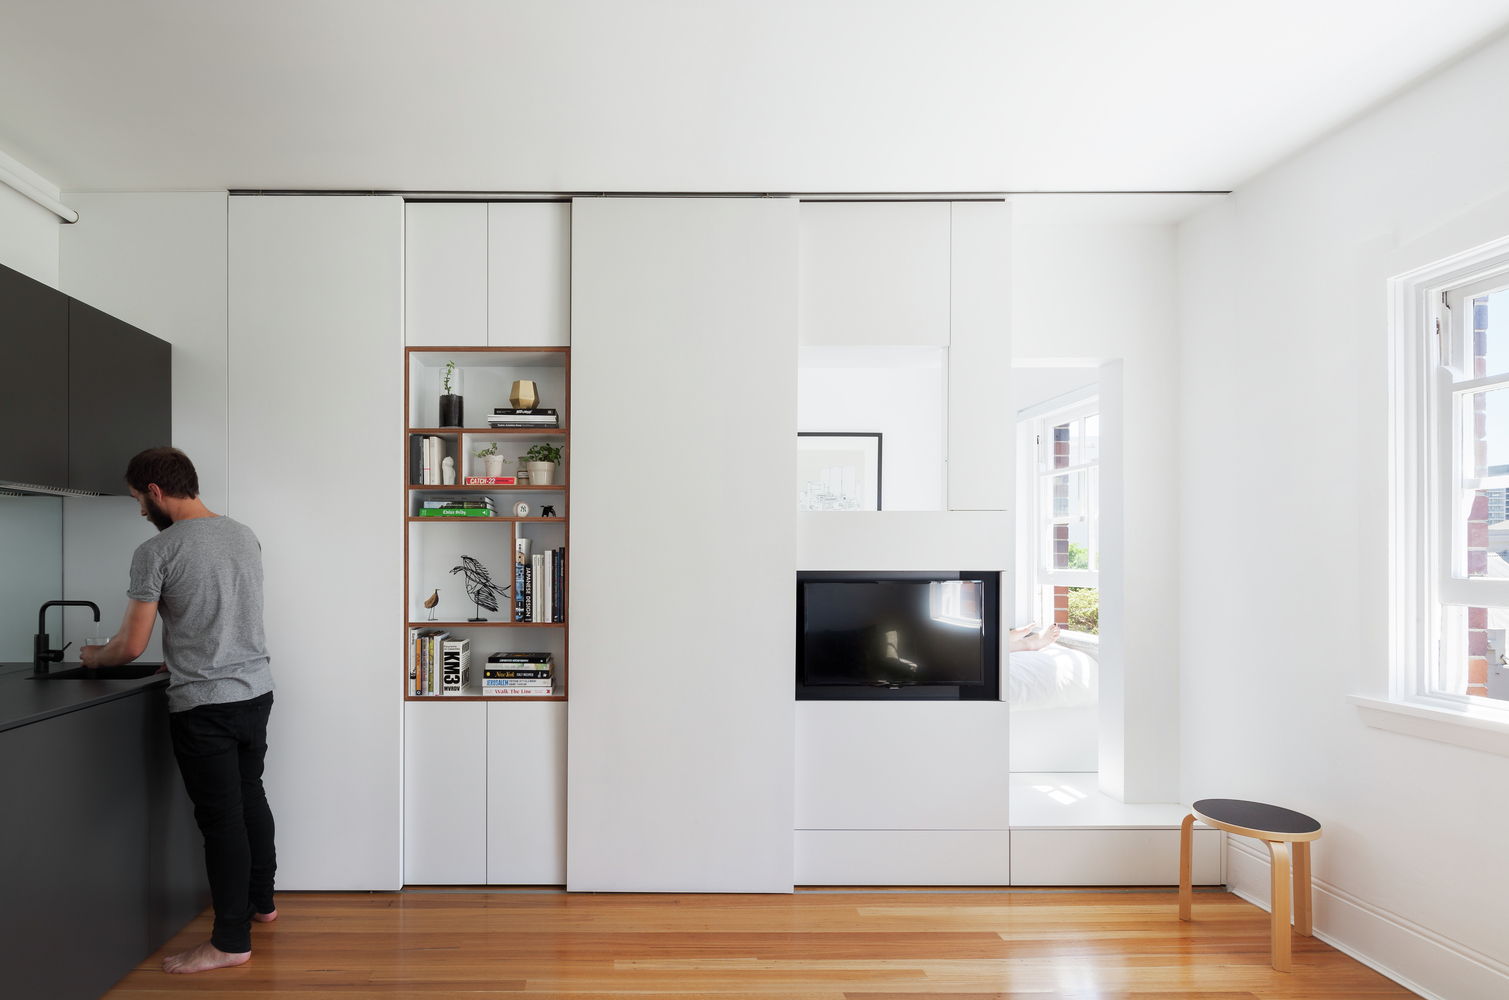 Darlinghurst Apartment by Brad Swartz Architect (via Lunchbox Architect)